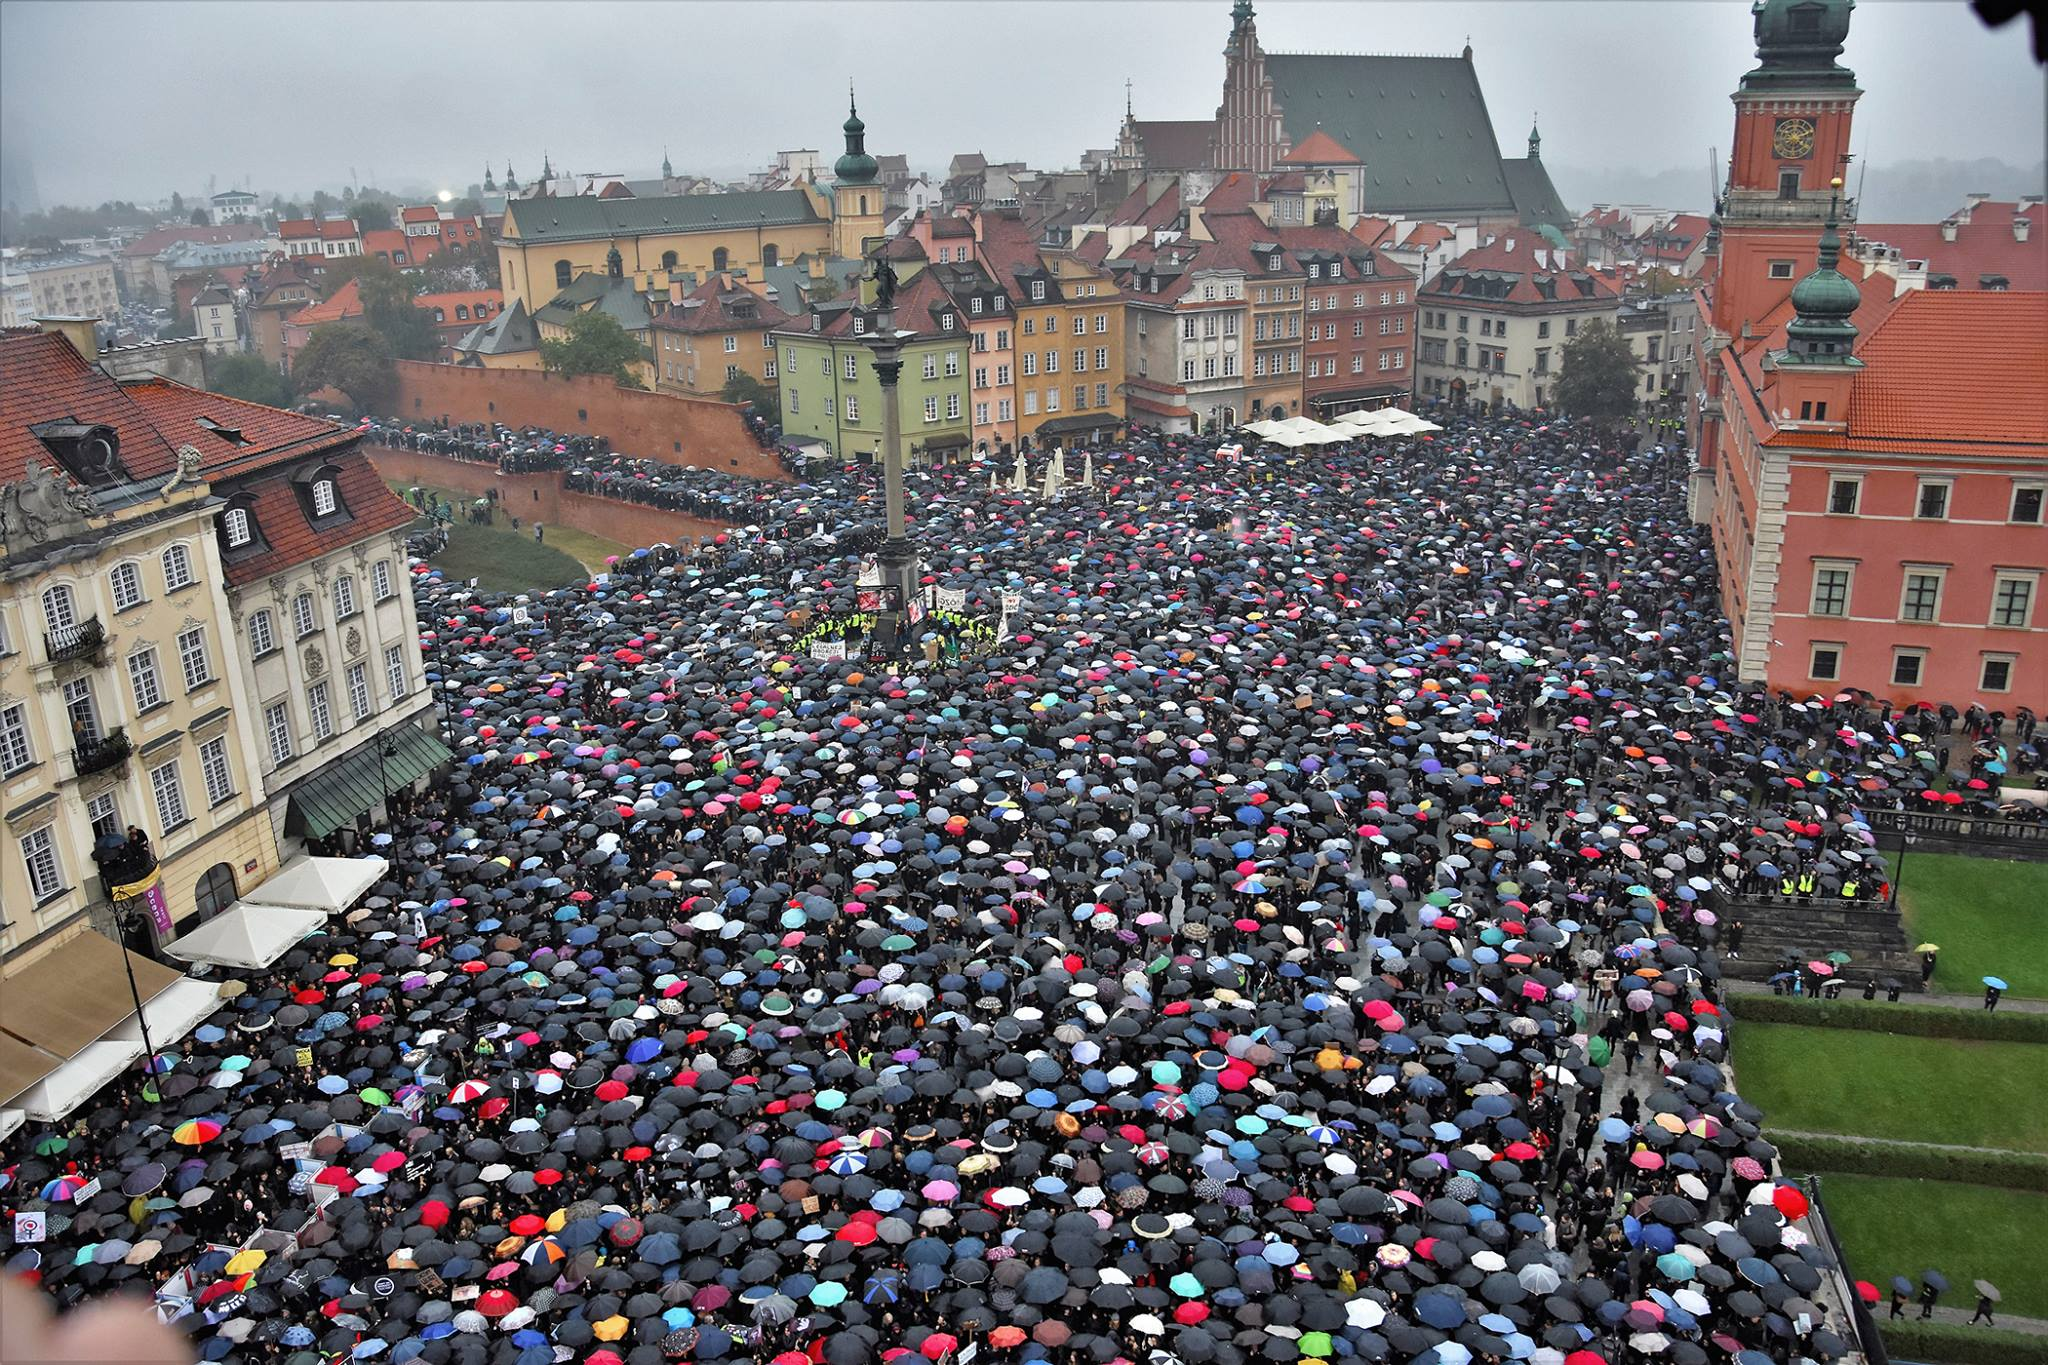 An image from the day of the abortion ban protest in Poland